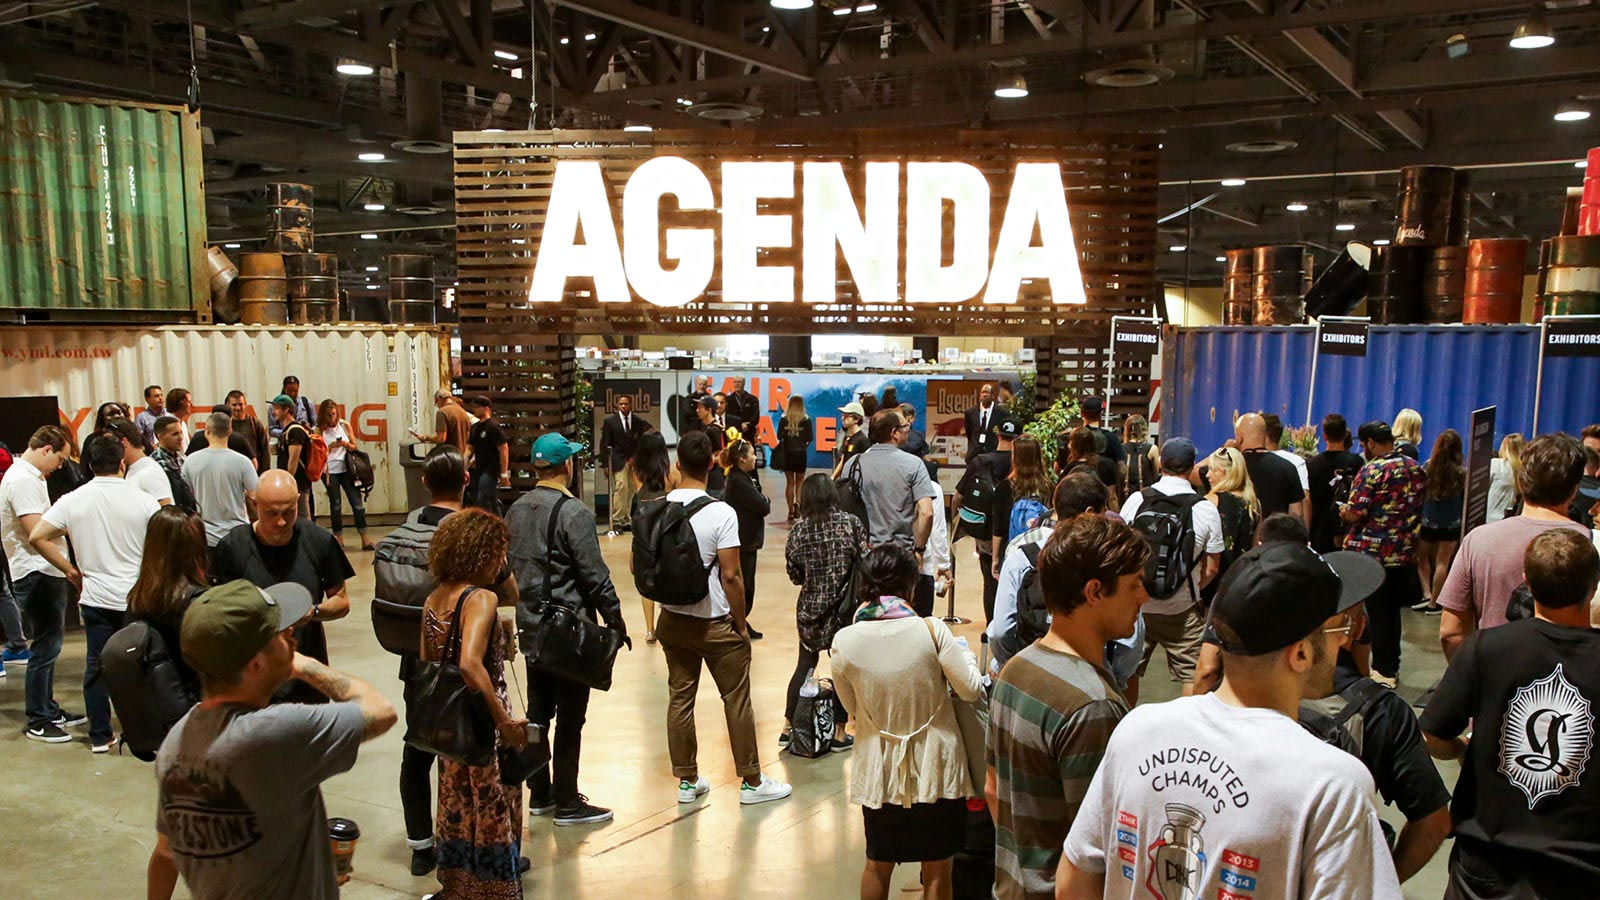 11 Amazing Booths from the Agenda Festival